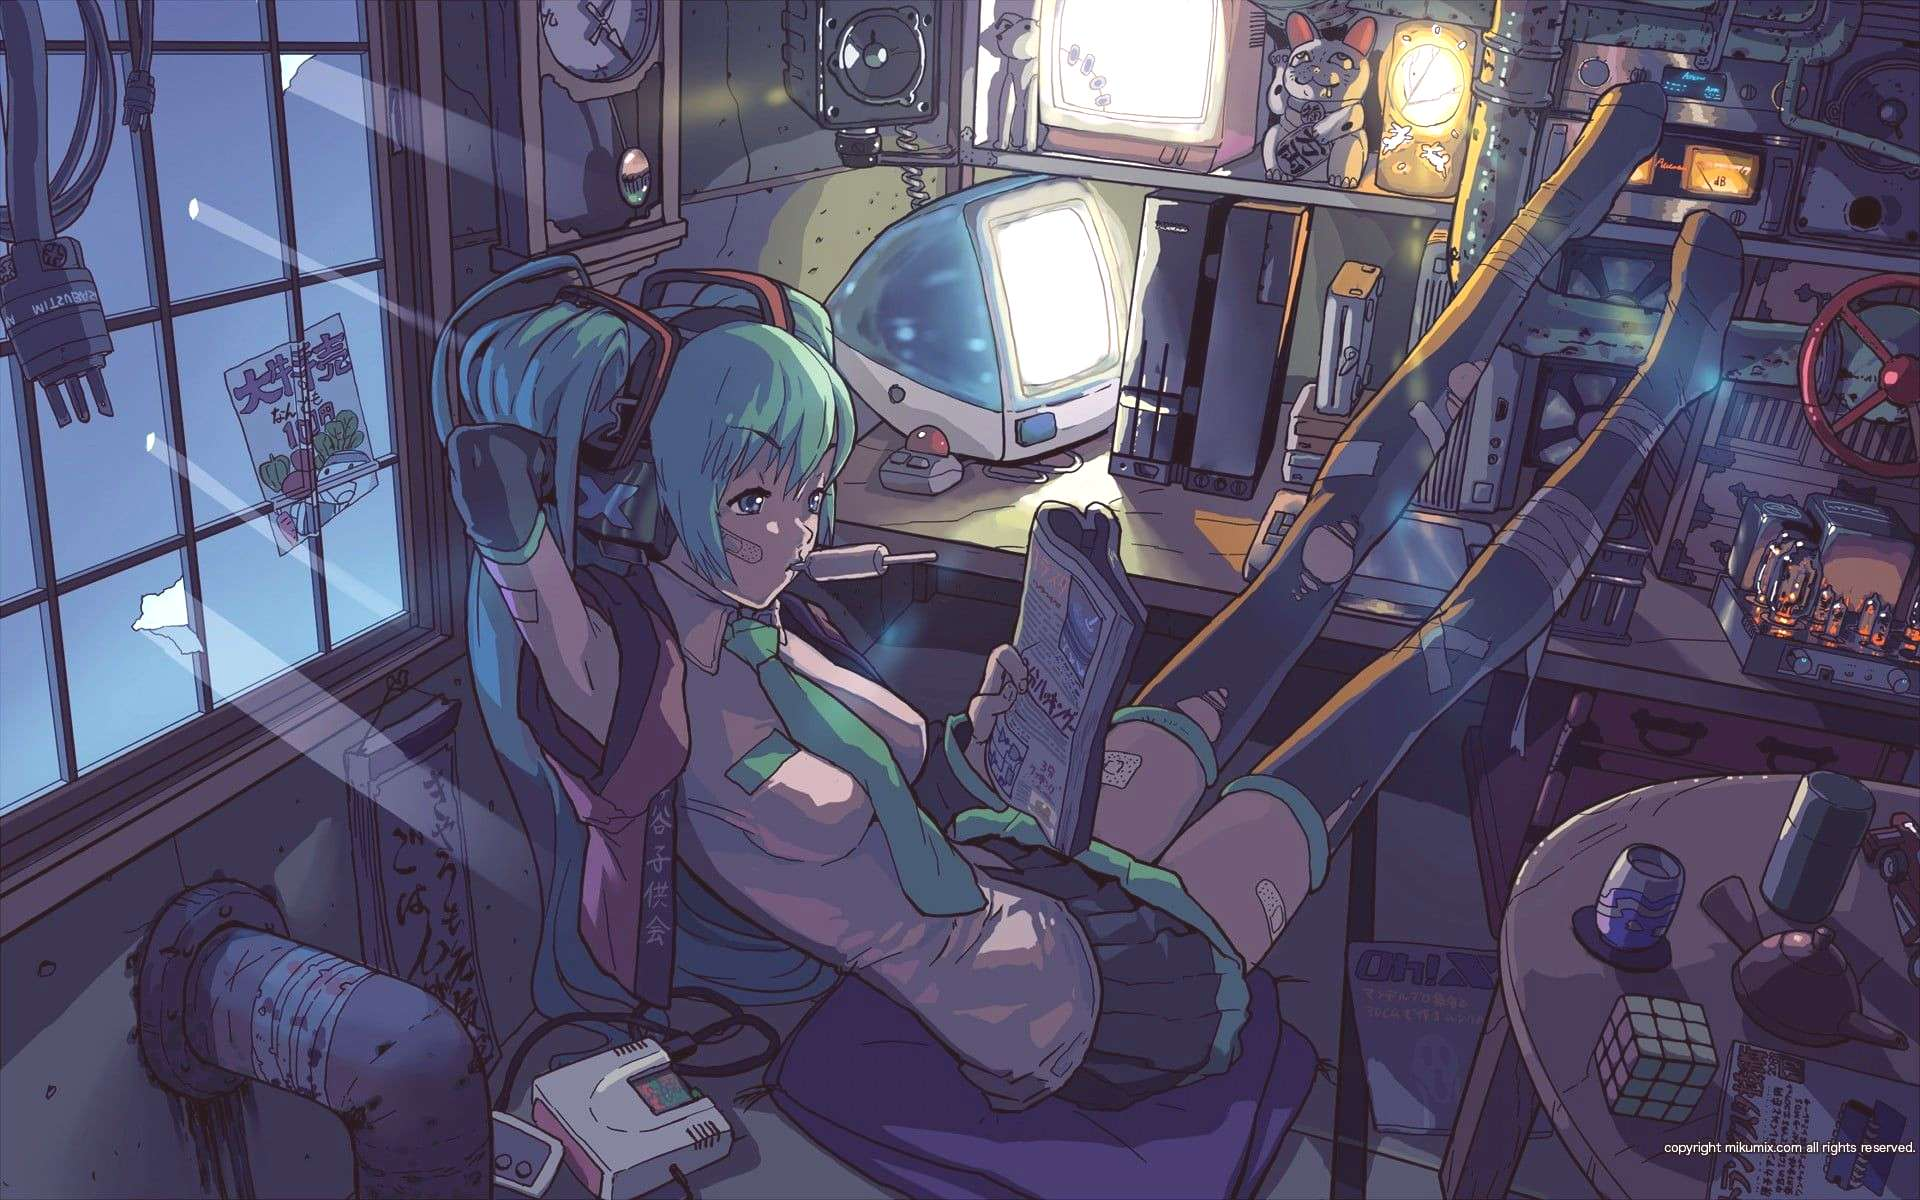 teal haired female animated character wallpaper anime girls Hatsune Miku ...-teal haired female ani